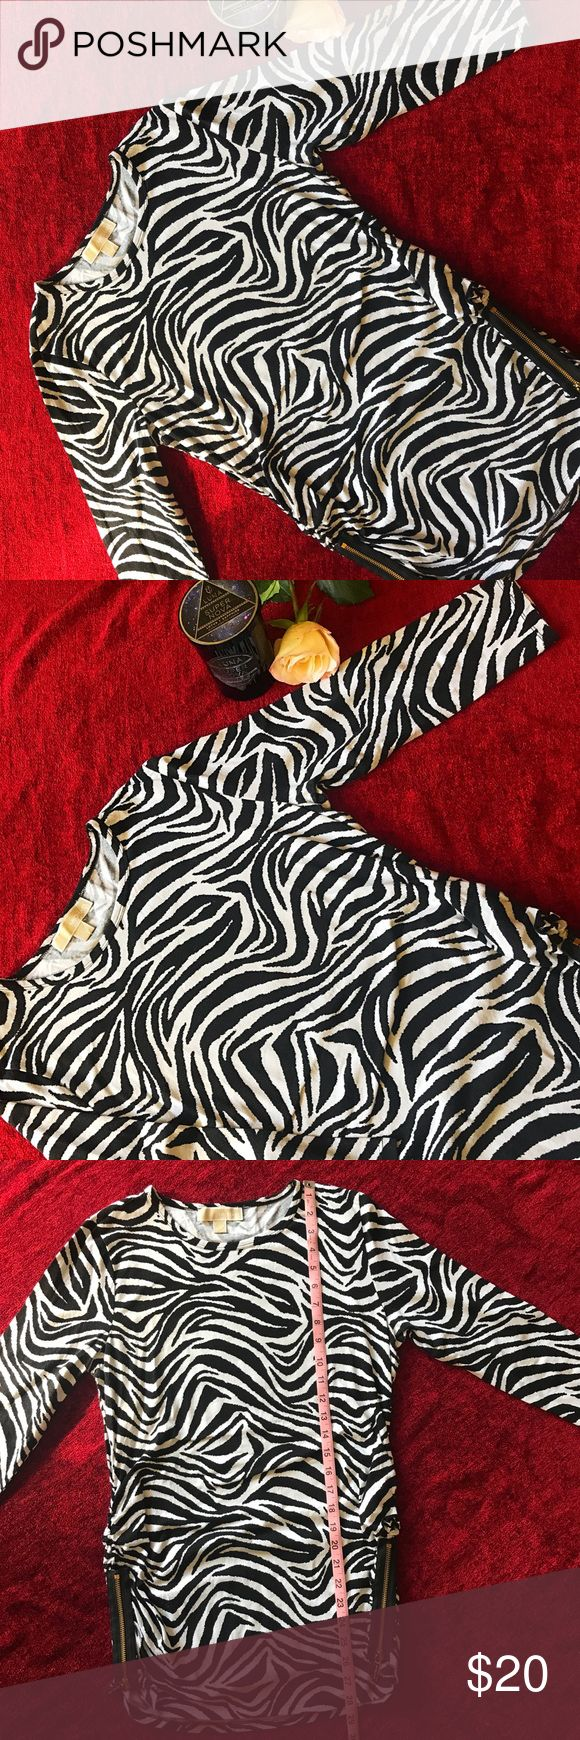 Michael Kors Zebra Top Black and white, zebra top by Michael Kors, size L. Functional side zippers. Used- in great condition. Michael Kors Tops Tunics